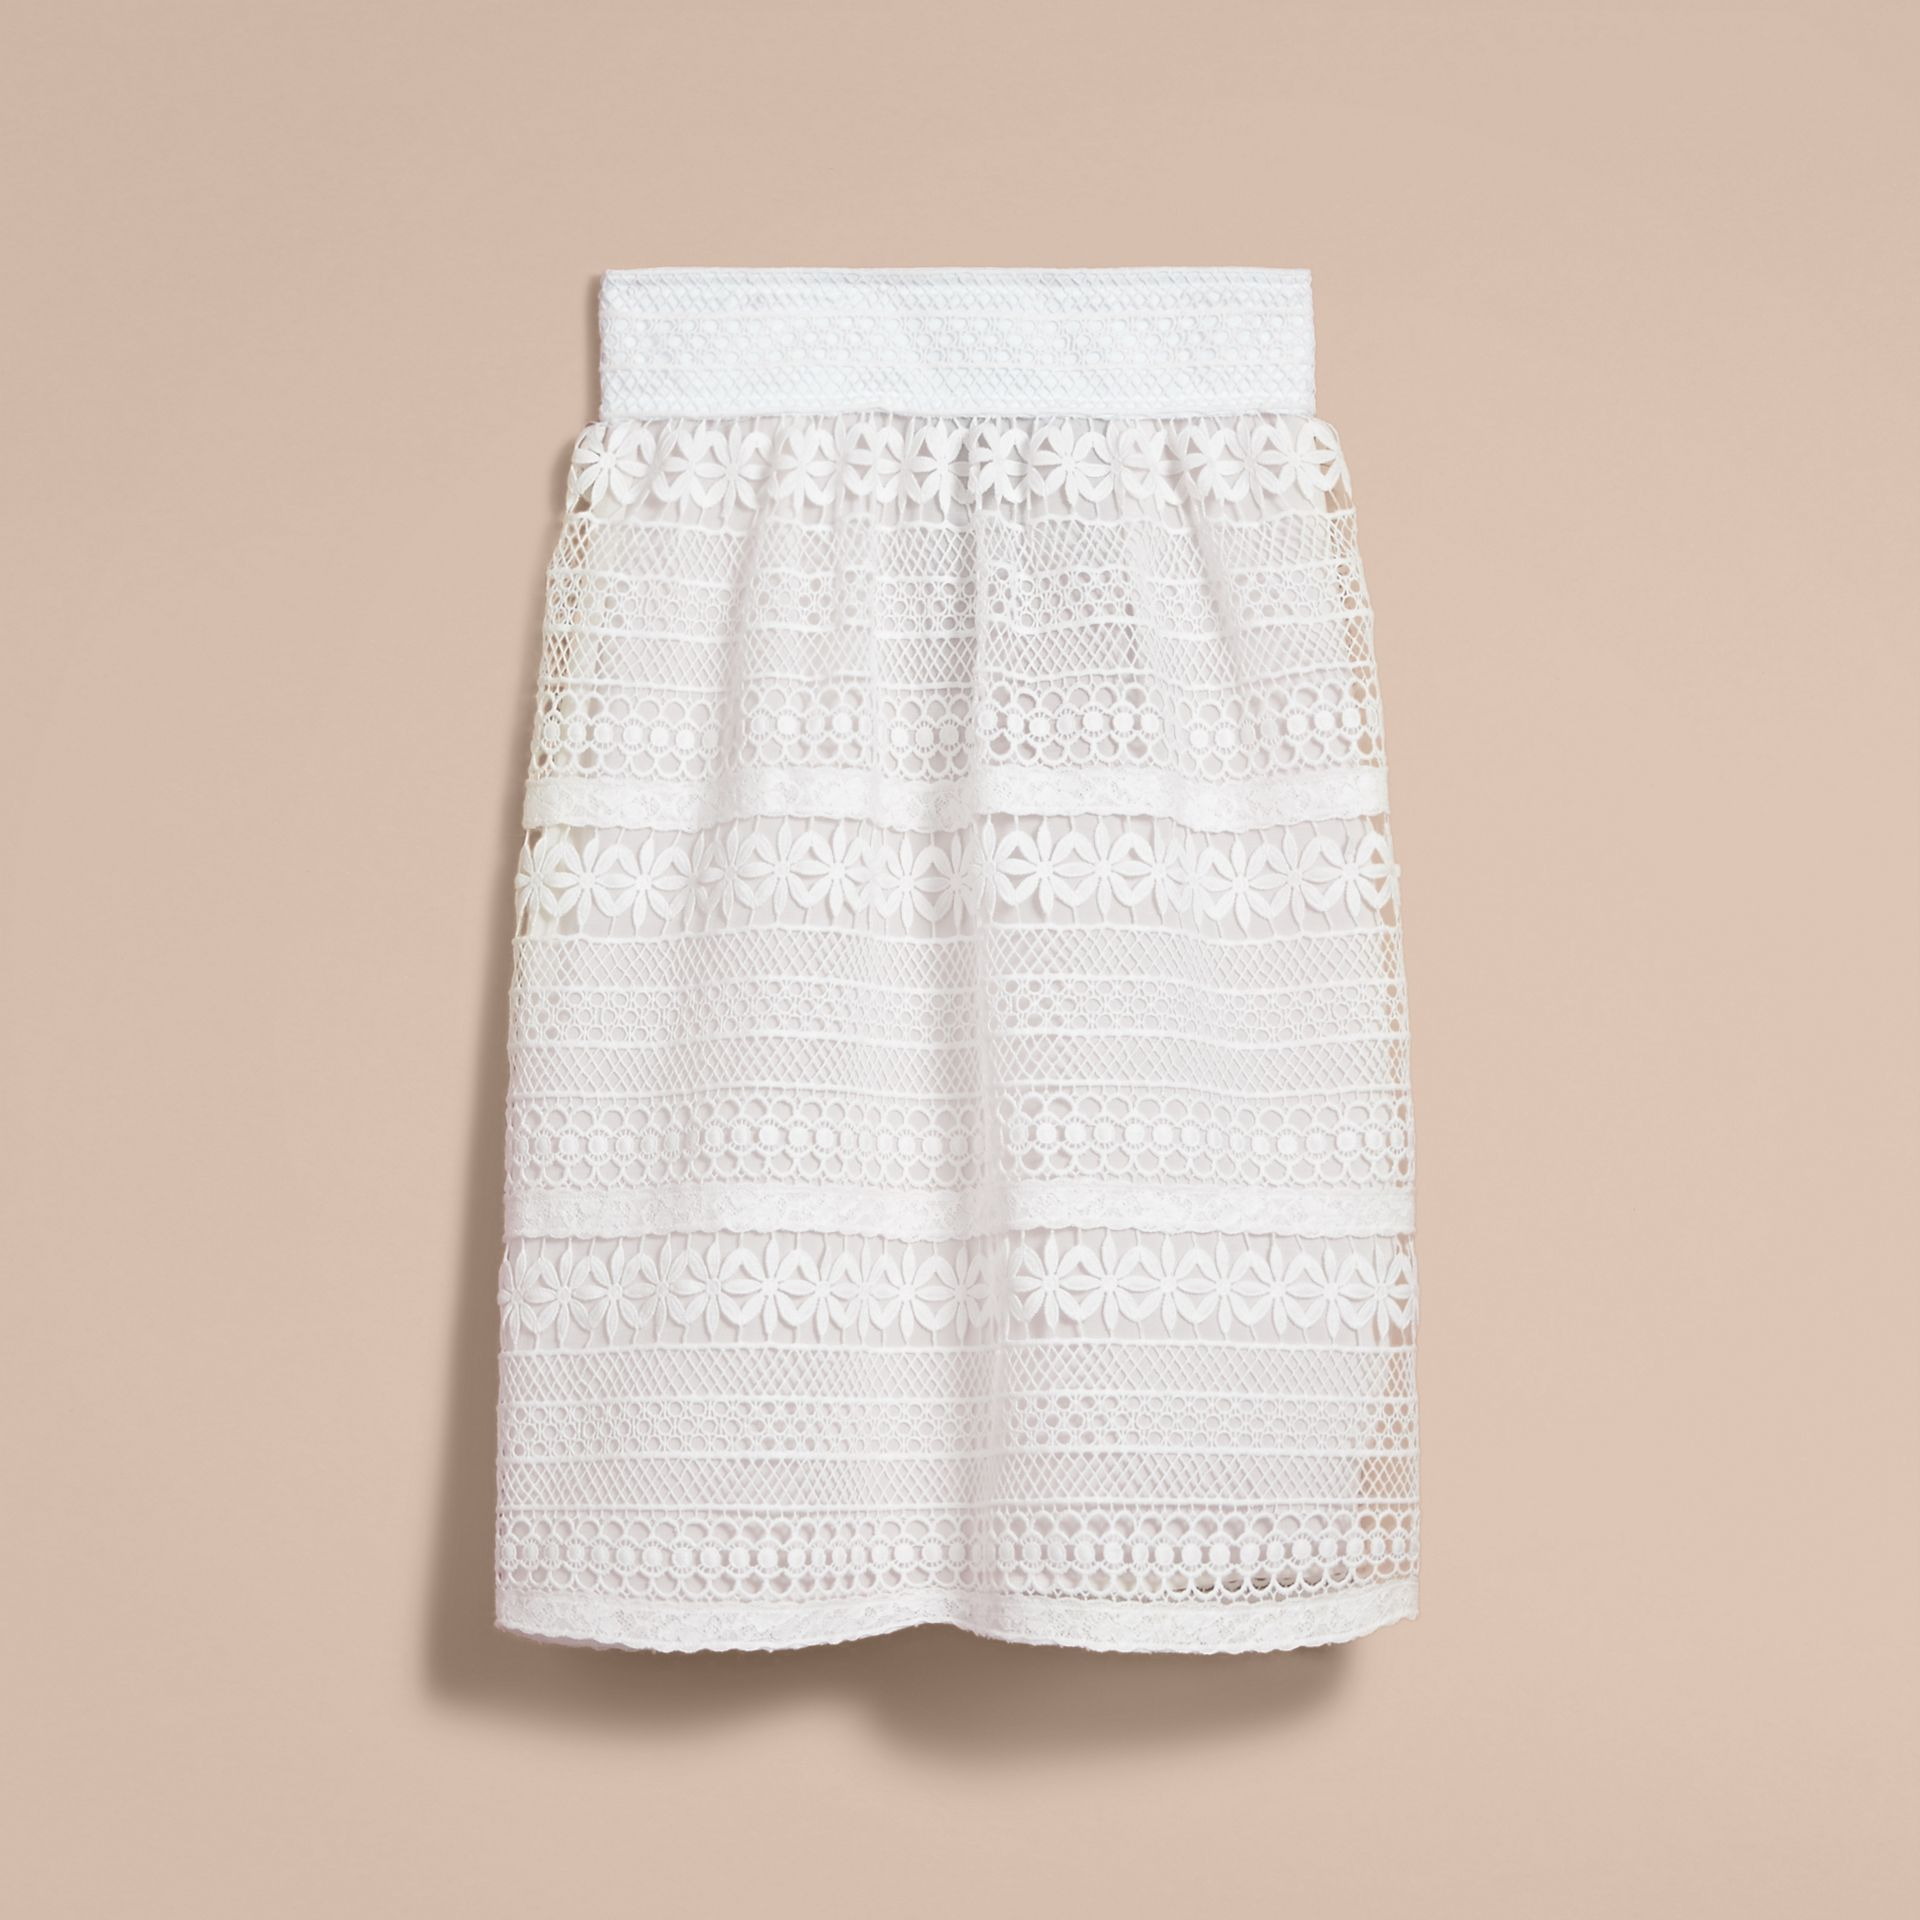 Macramé Lace Skirt in White - Women | Burberry - gallery image 4